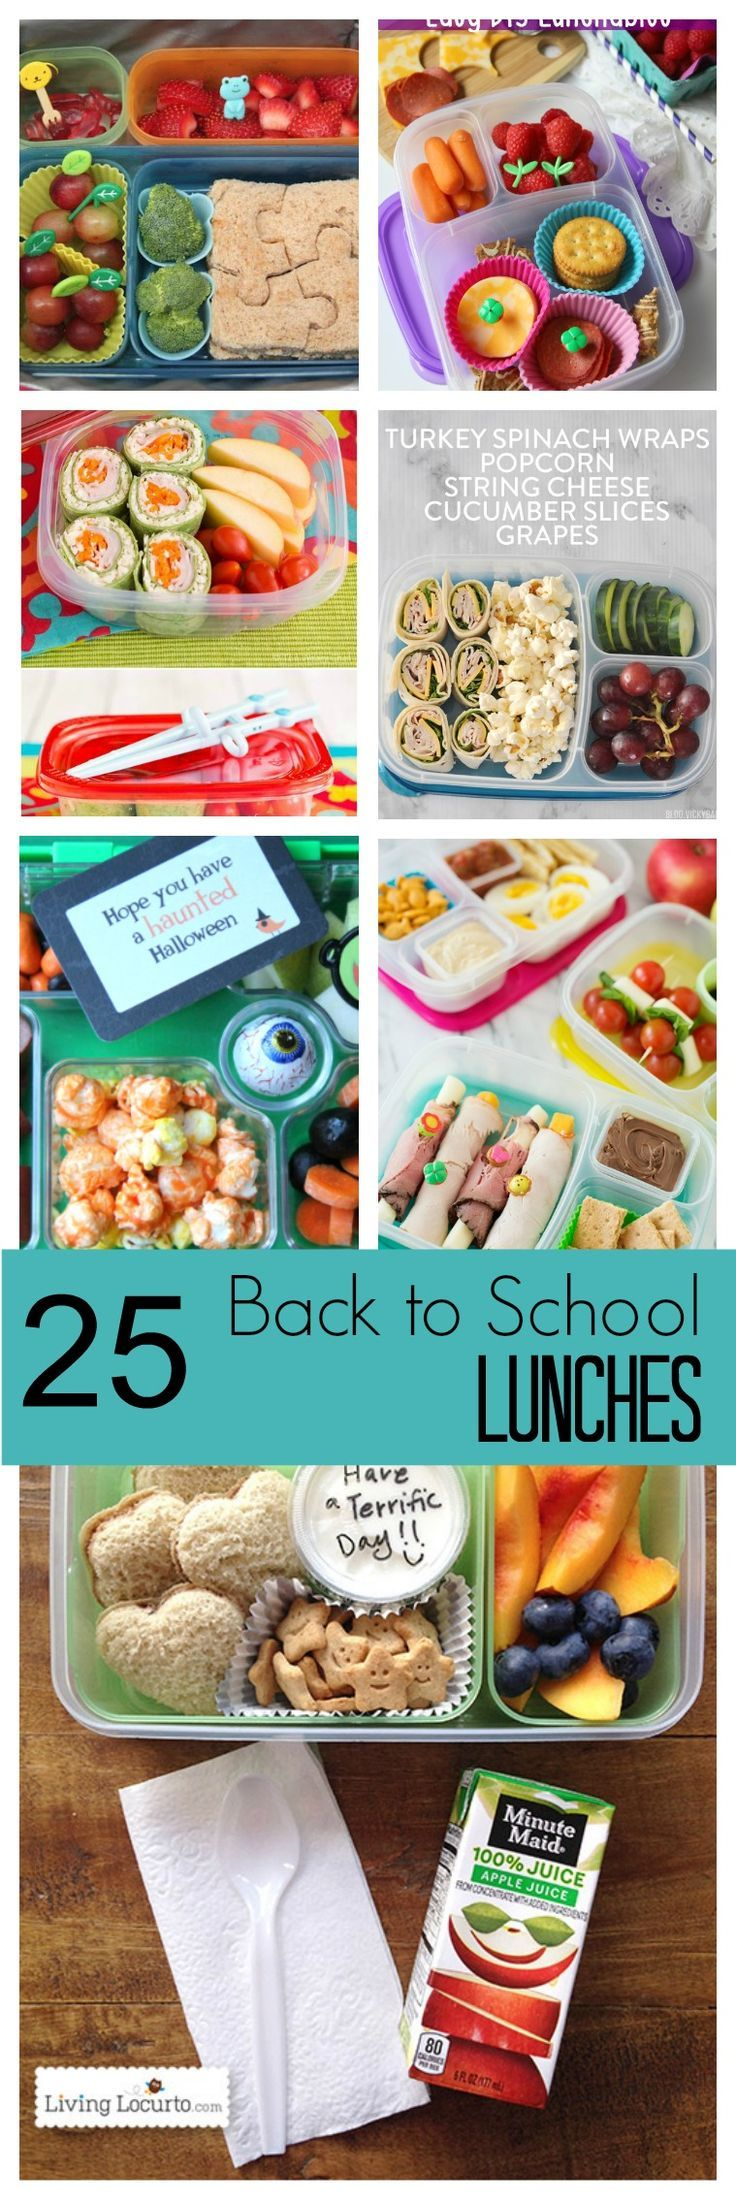 367 best Back to school images on Pinterest   Rezepte, Baking and Candy